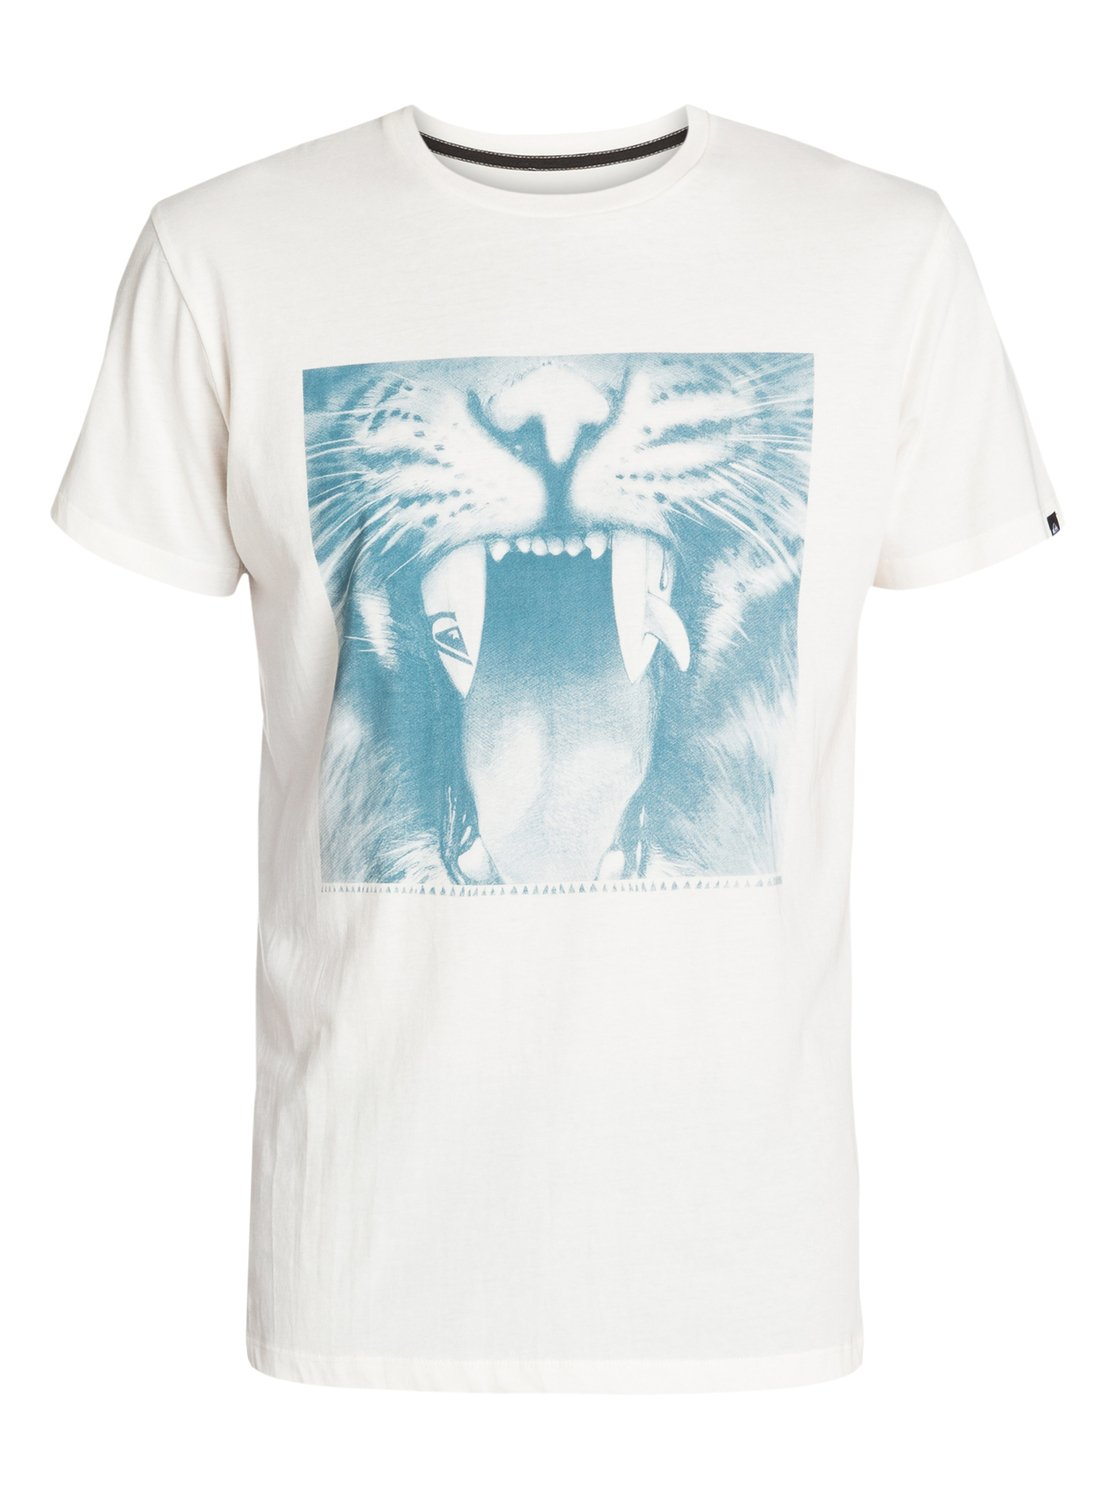 Organic Tee Java Tiger - Quiksilver������� �������� Quiksilver � �������� ������� � ������� �� ��������� ����� 2015. ��������������: �������� �� ������������� ������, ��������� ����� 140 �/��. �, ����������� ���� Modern Fit.<br>